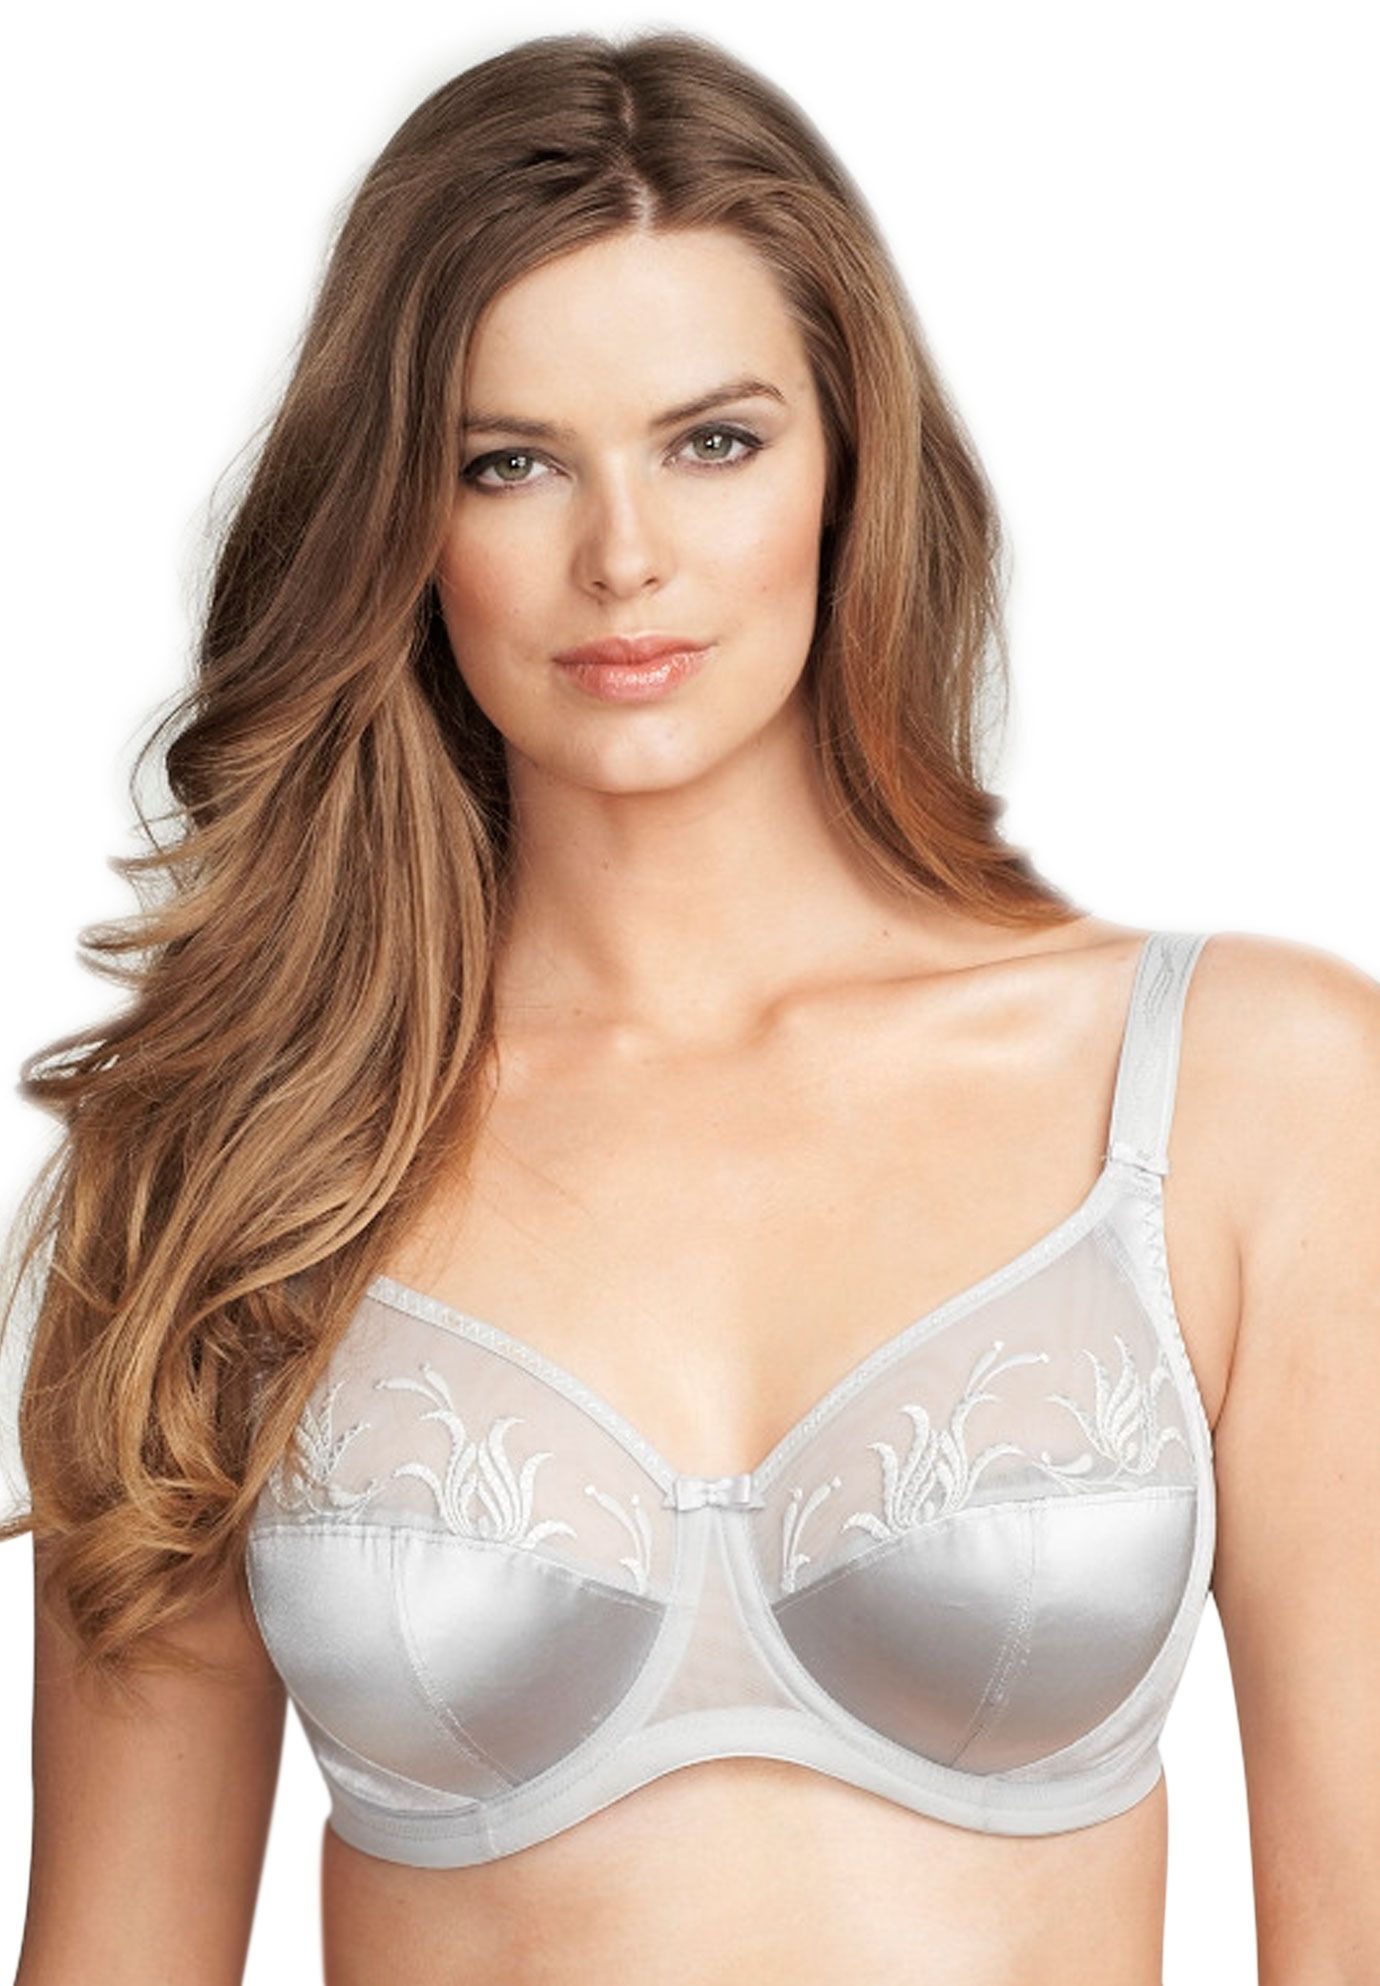 Caitlyn Underwire Side Support Bra By Elomi Plus Size View All Bras Fullbeauty Com Bra Models Big And Tall Outfits Bra